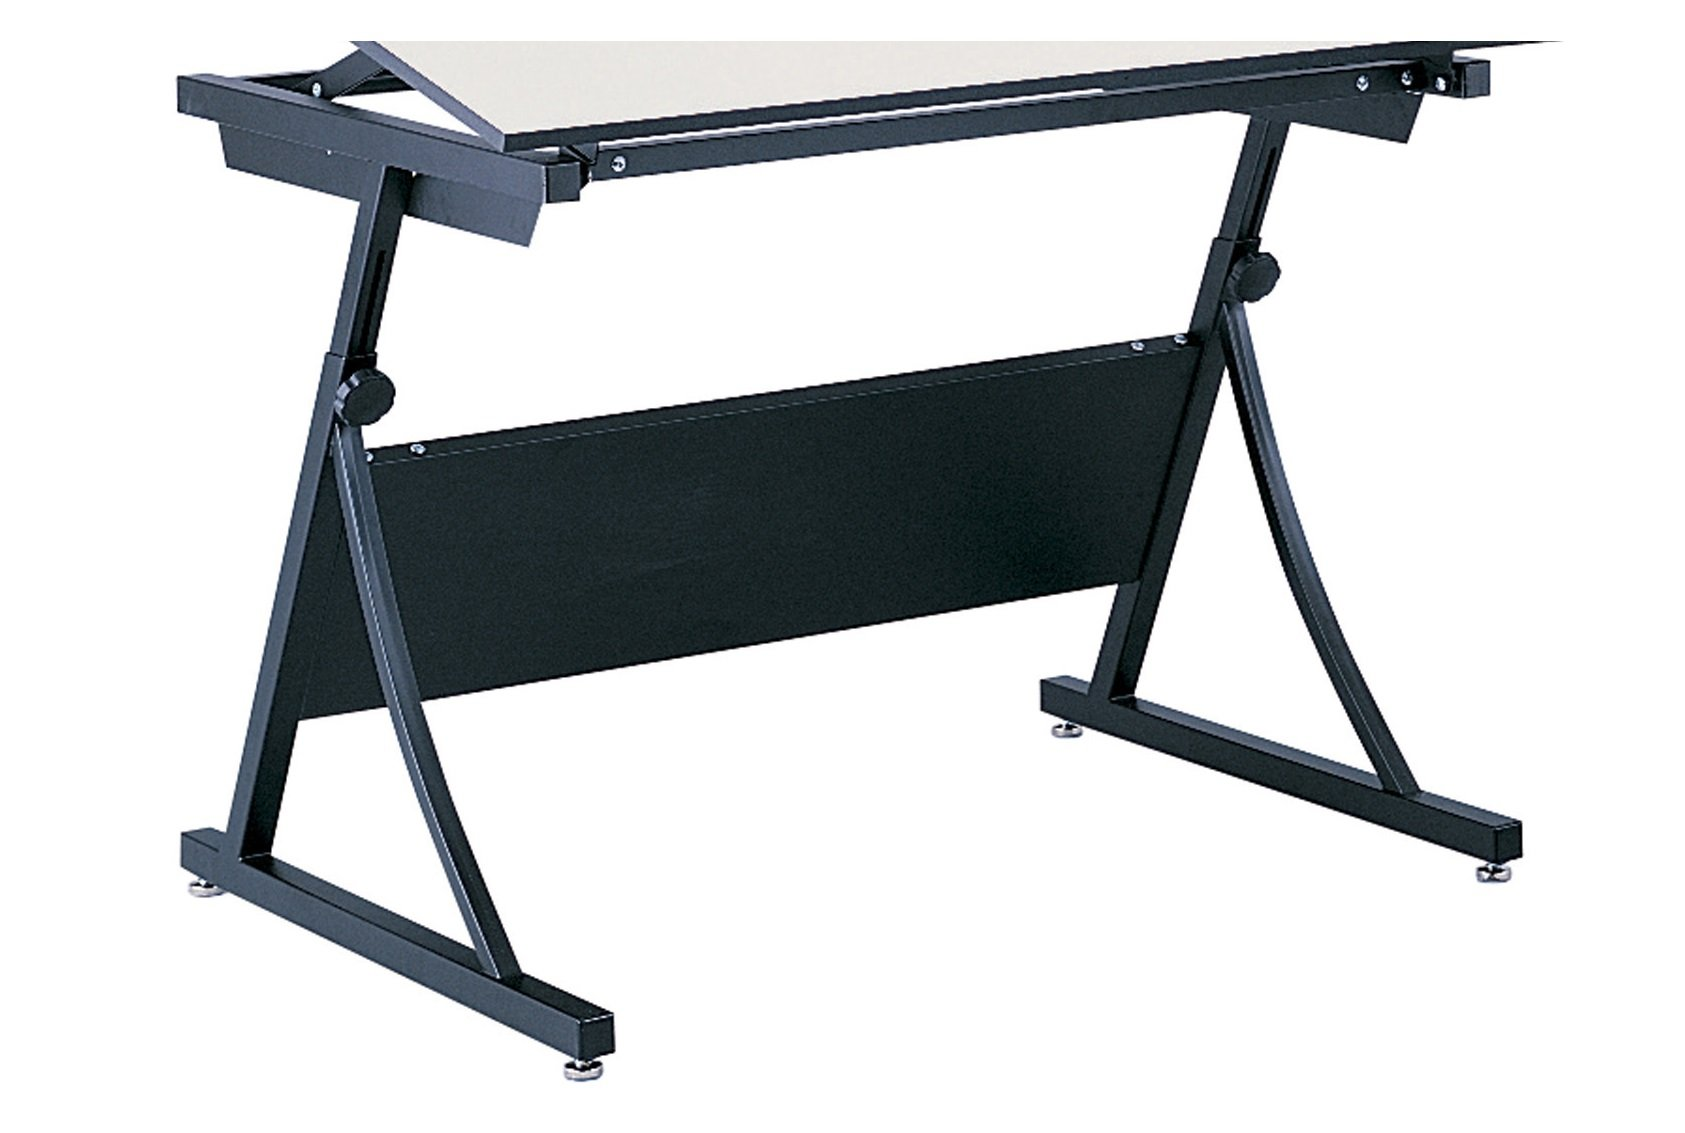 Safco Products 3957 PlanMaster Adjustable Drafting Table Base for use with 3948, 3951 Table Top, sold separately, Black by Safco Products